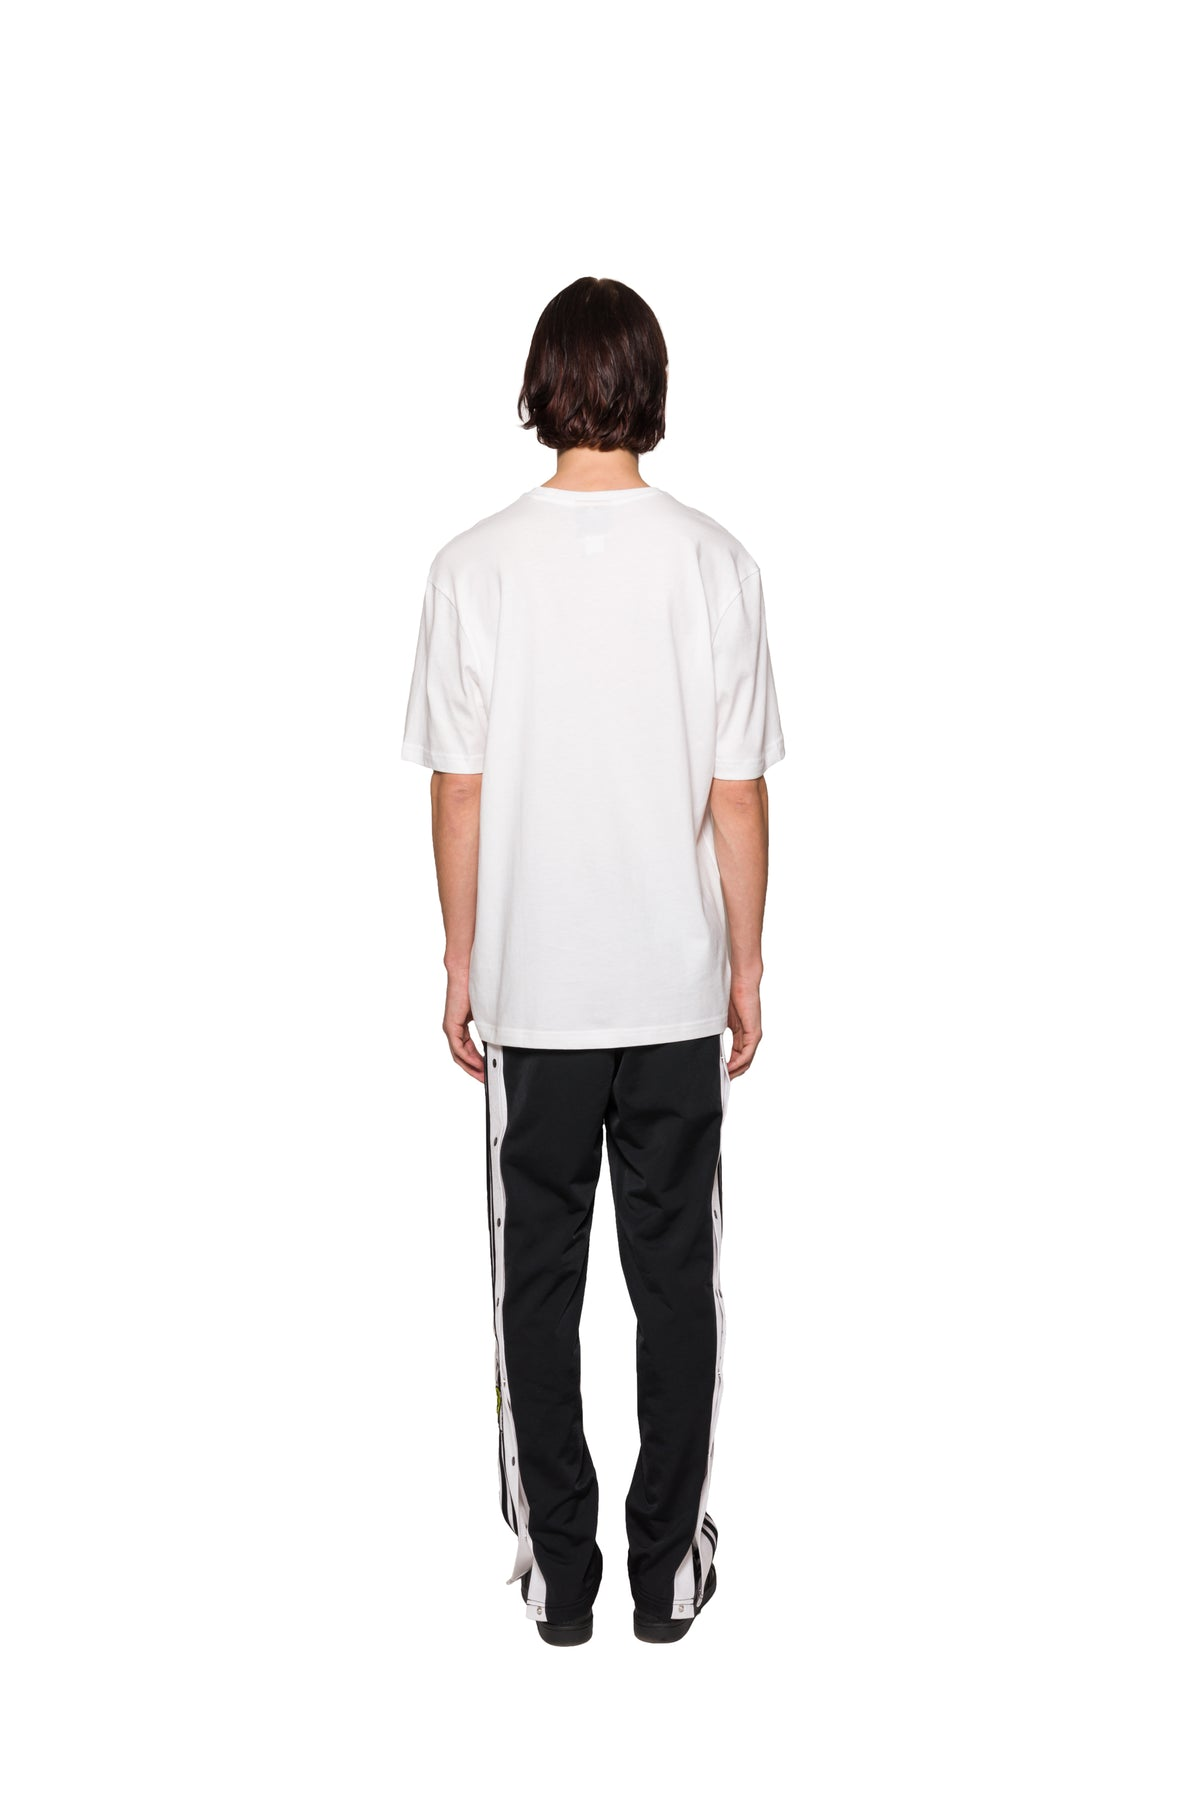 adidas by 032c T-shirt